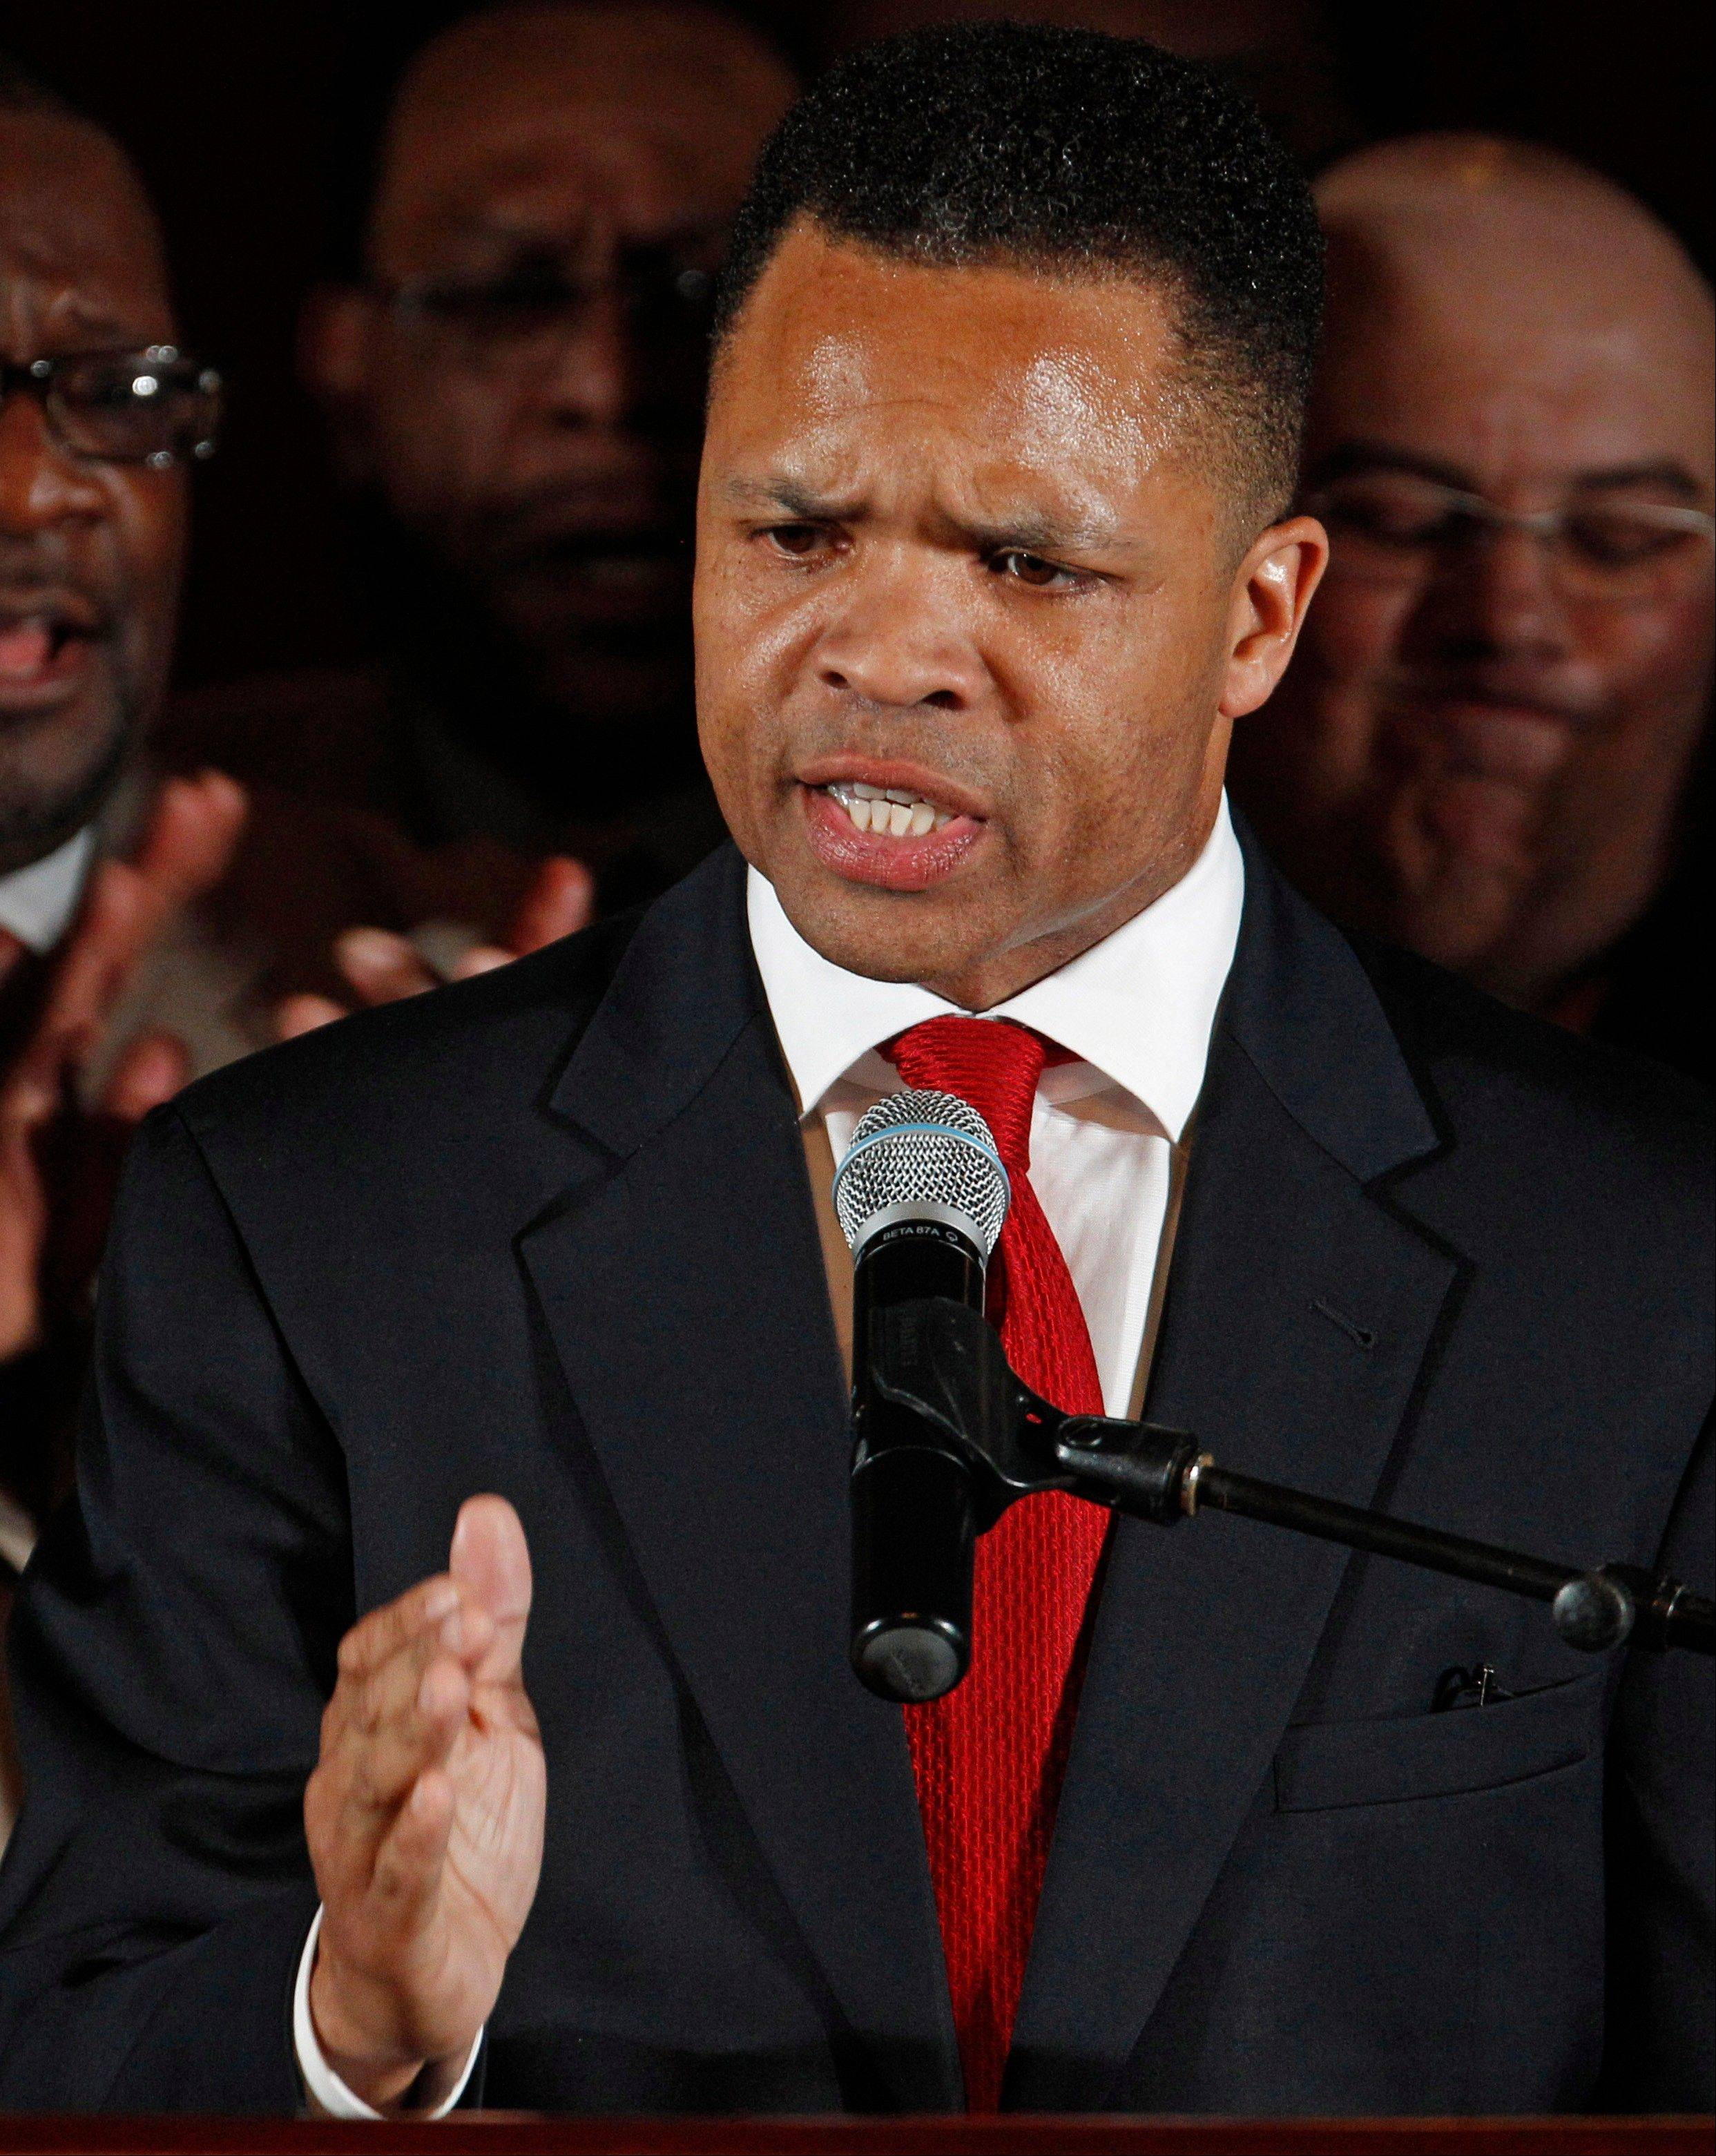 Congressman Jesse Jackson Jr. has been on medical leave for a month. His location and exact medical condition are unknown.